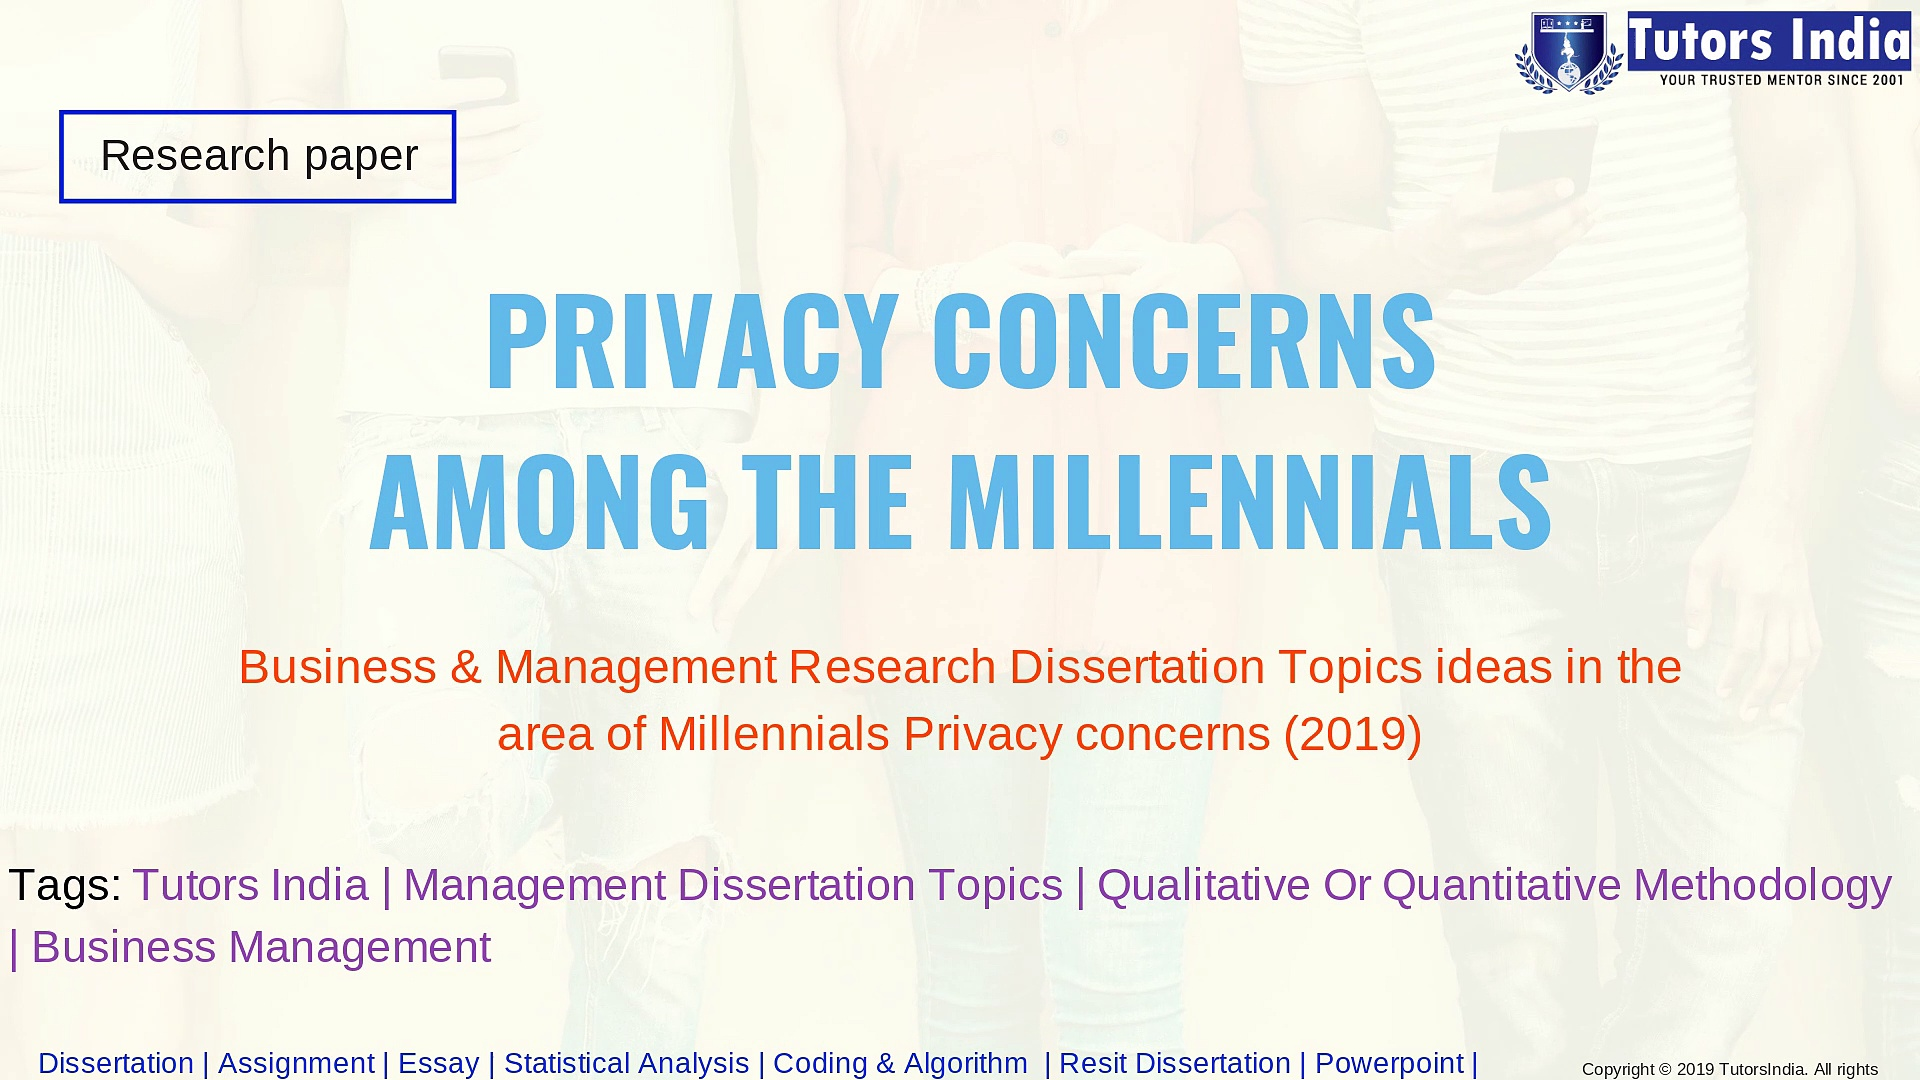 Privacy concerns among the millennials -Business & Management Research Dissertation Topics ideas in the area of Millennials Privacy concerns